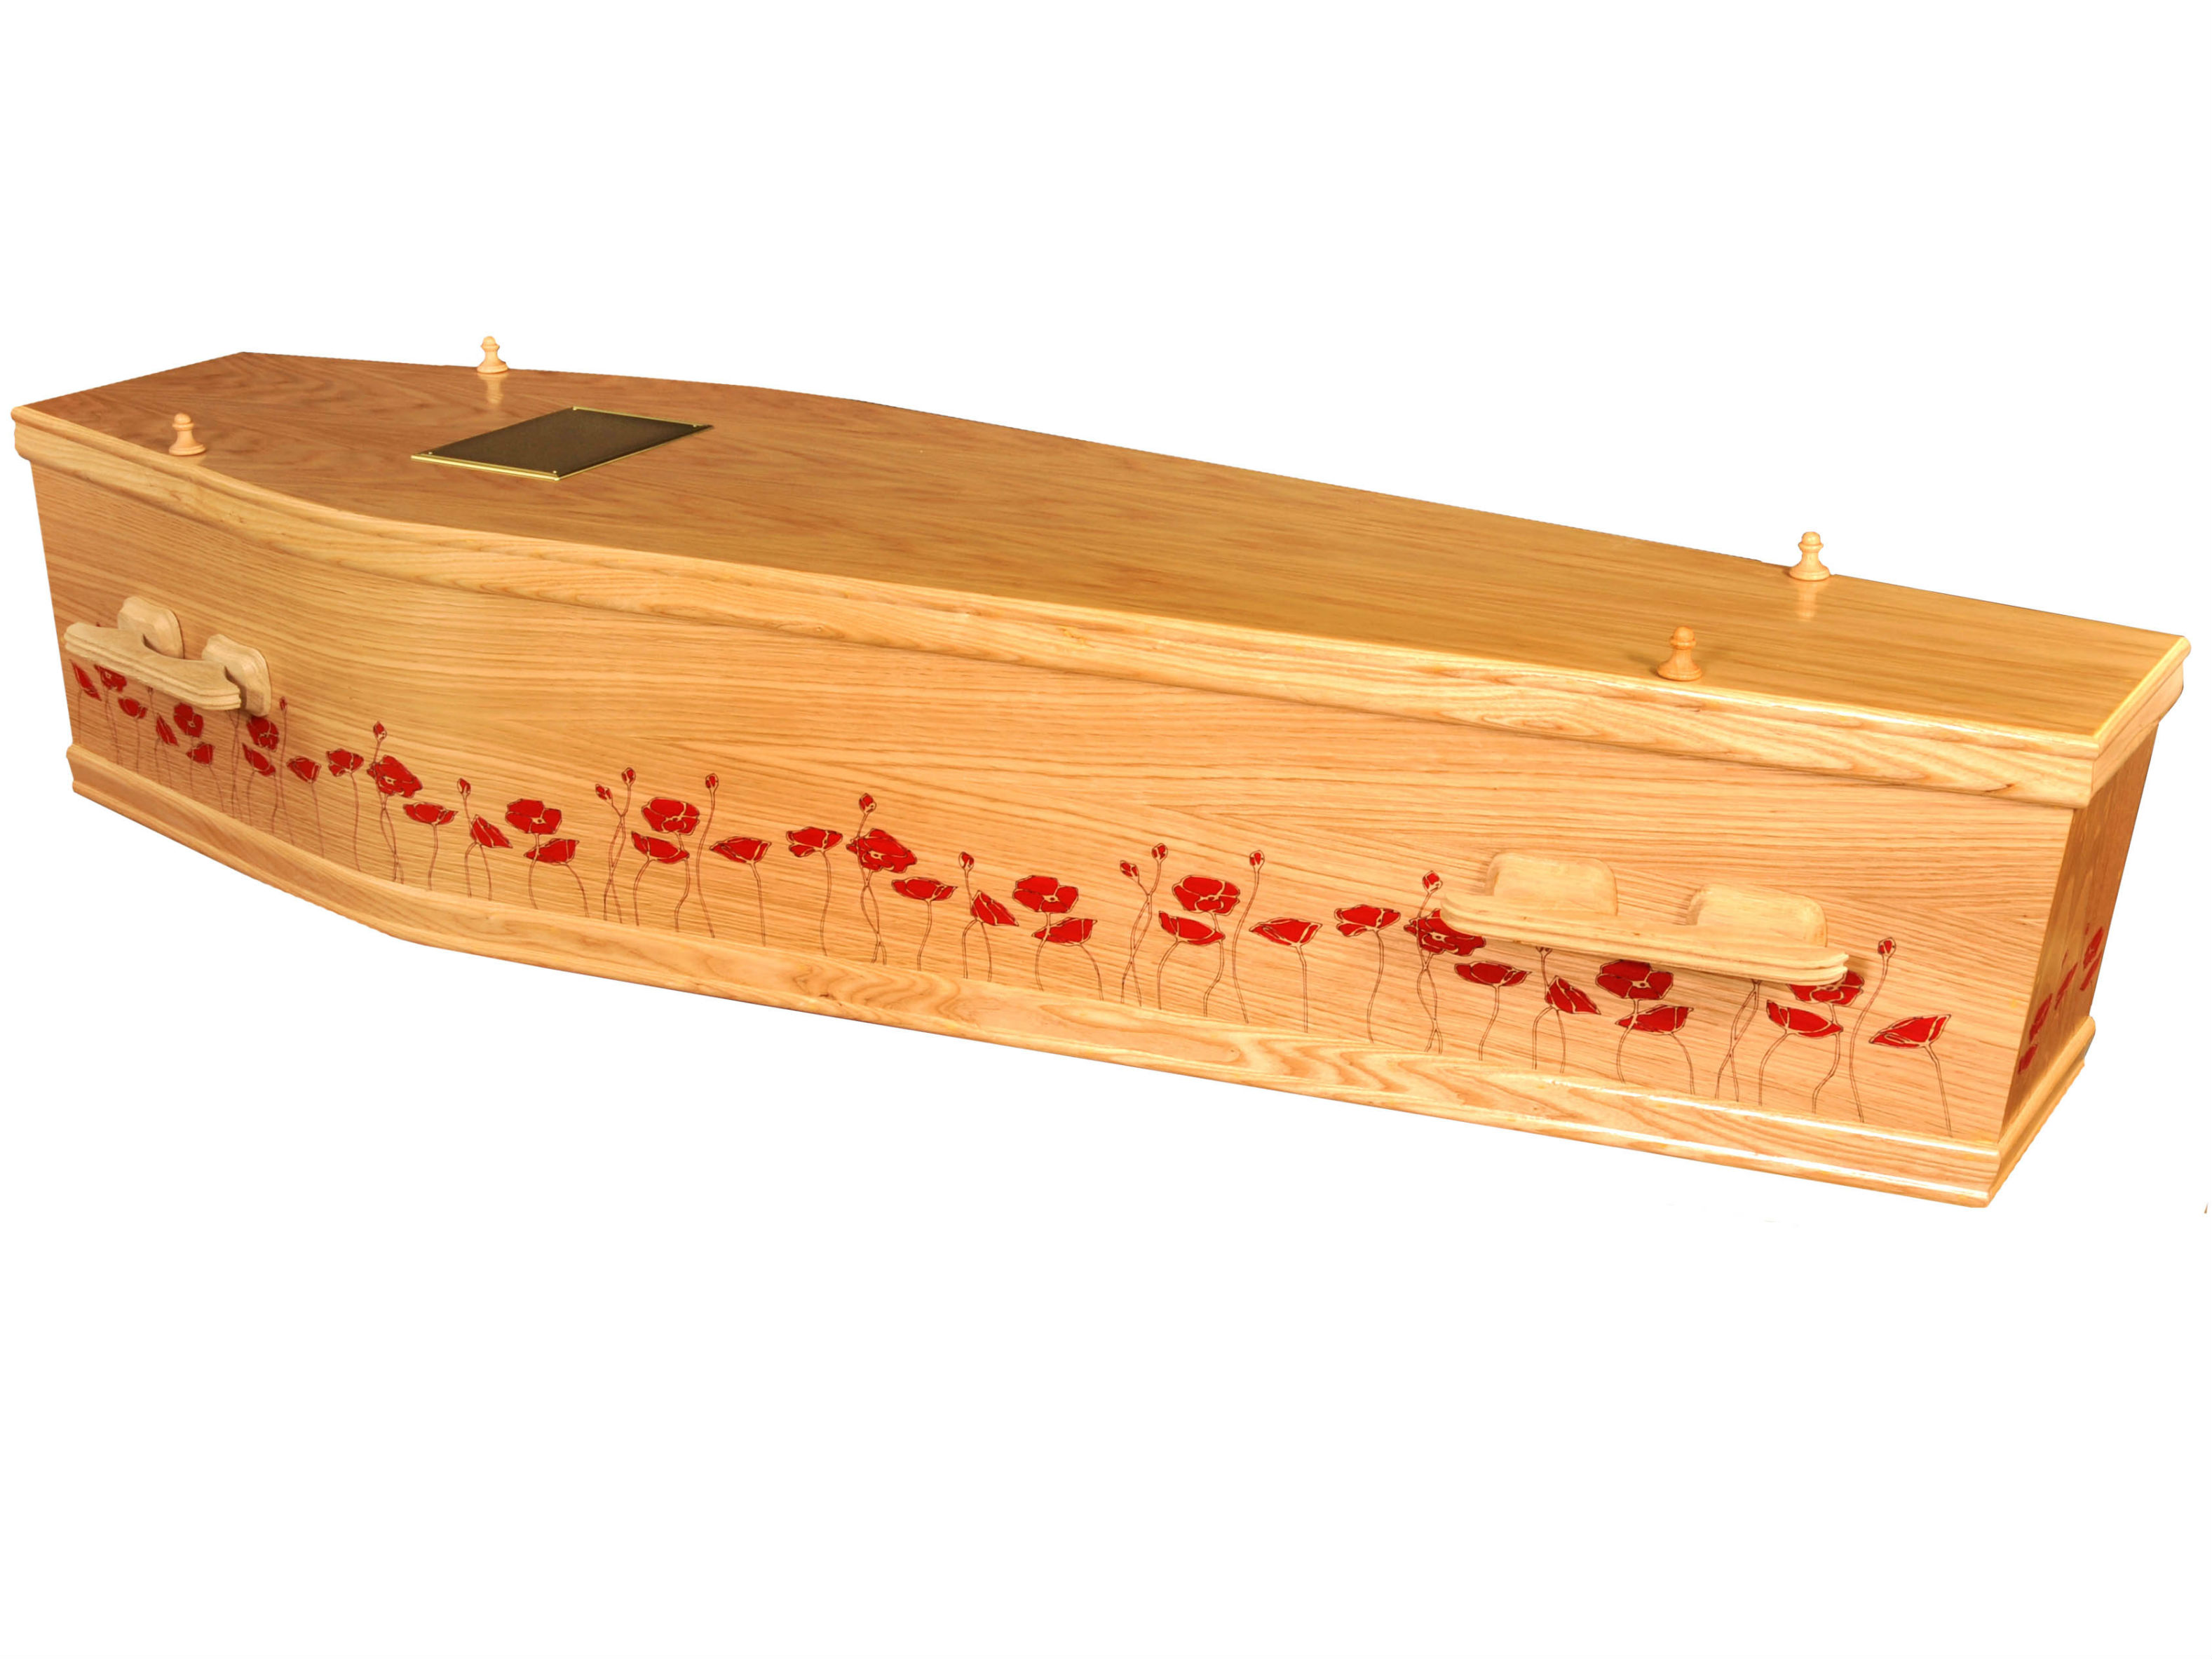 Red poppies painted on a light oak coffin